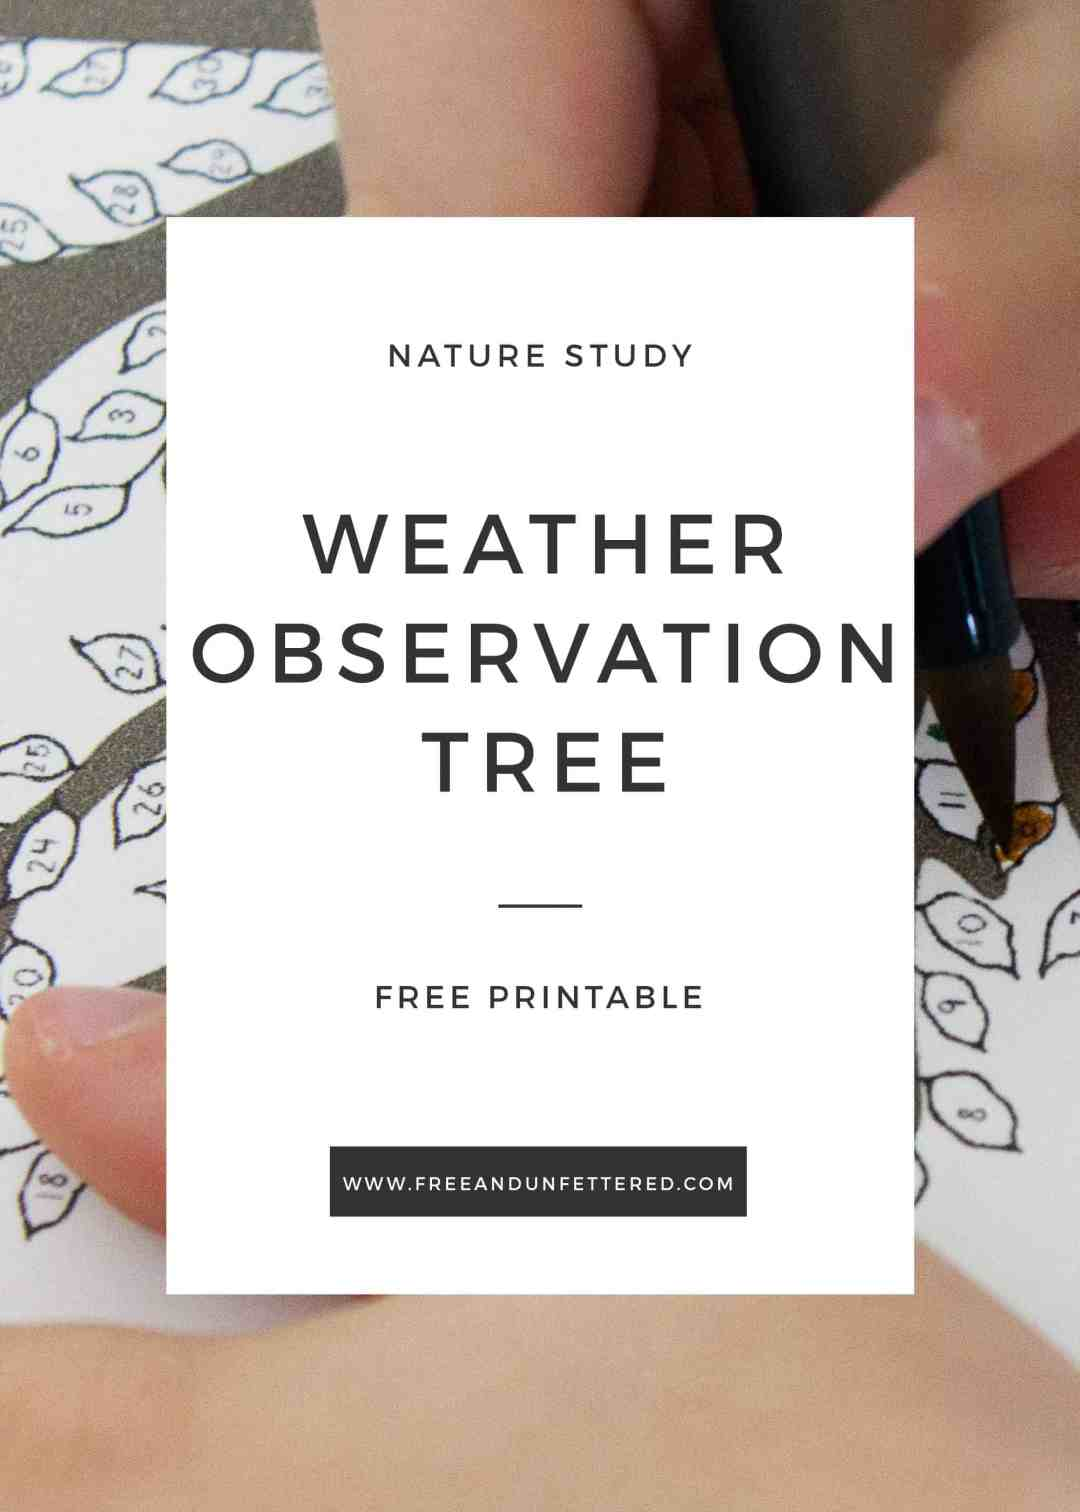 free printable 2019 weather observation tree for nature study with children